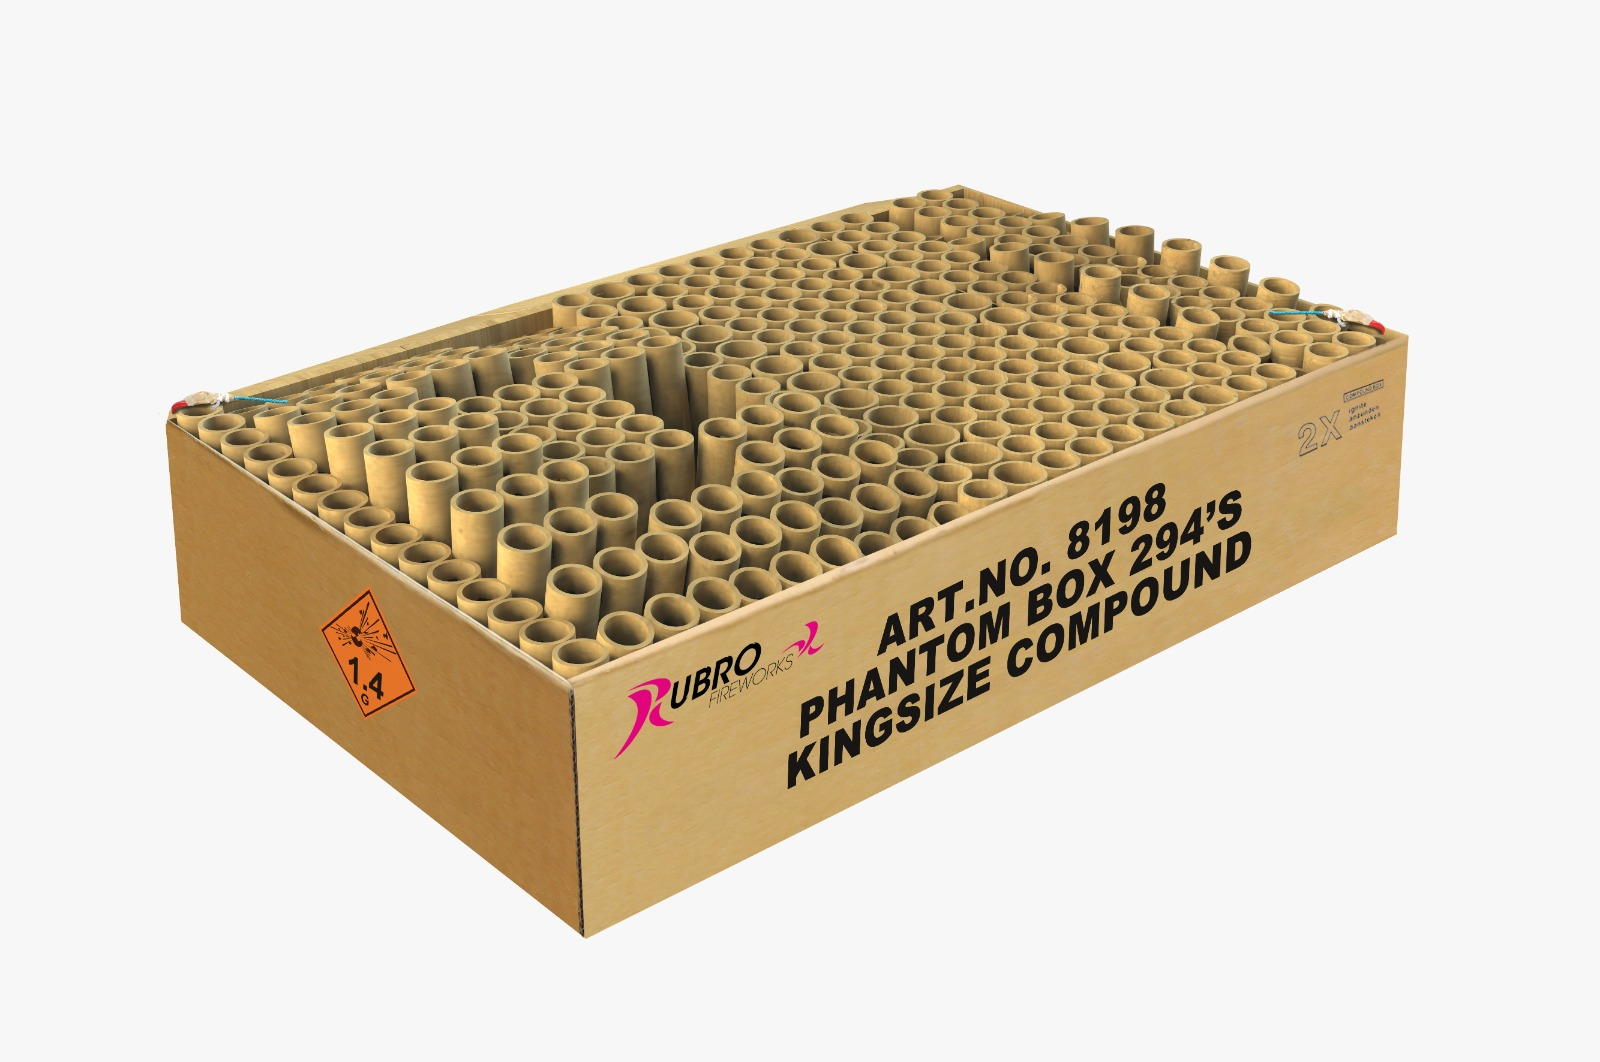 PHANTOMBOX KINGSIZE COMPOUND    25-30mm